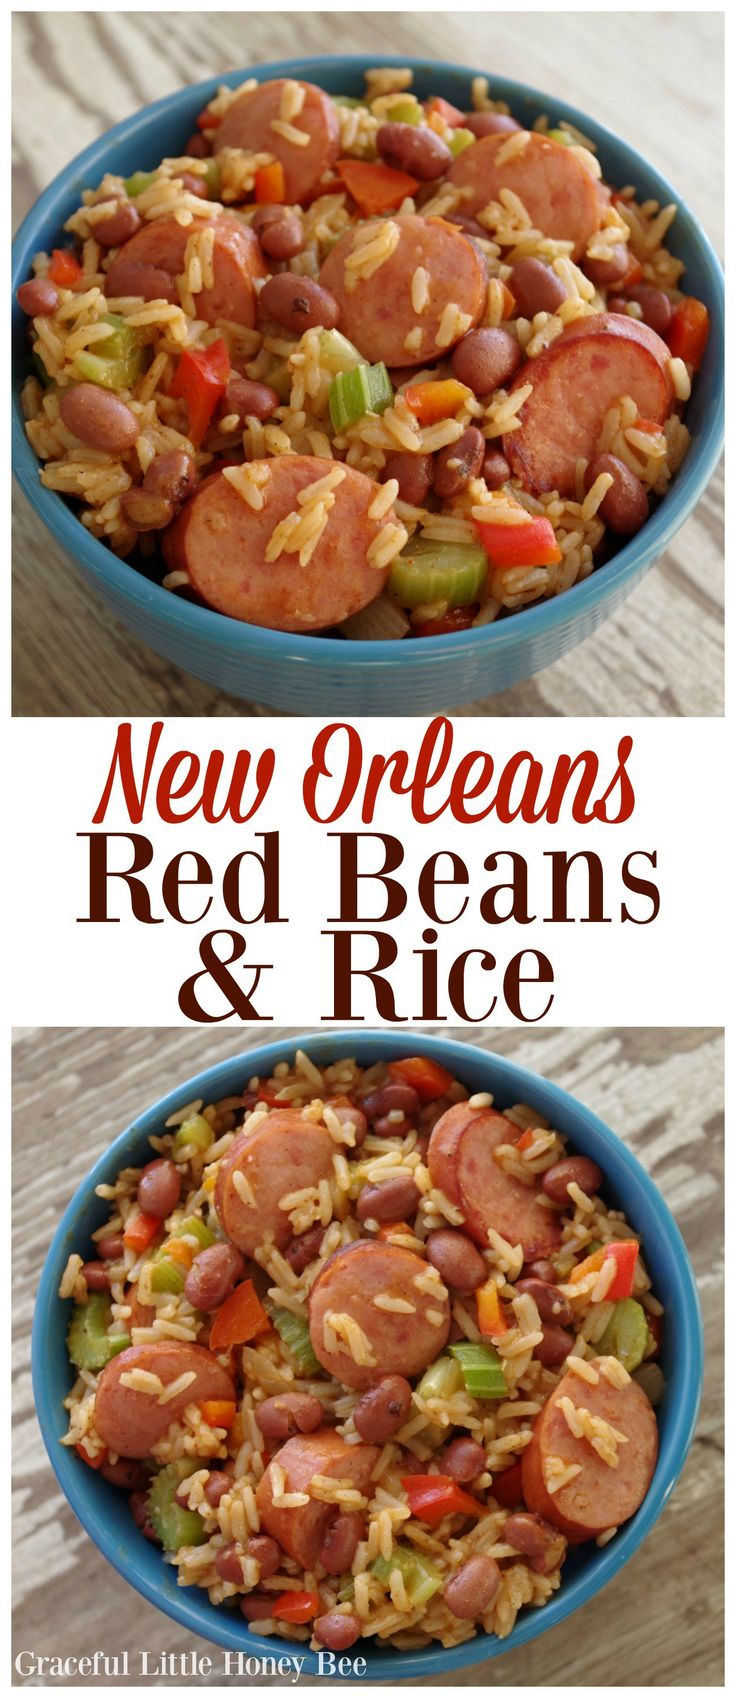 Try this classic New Orleans Red Beans & Rice for a fun and flavorful weeknight dinner that the whole family is sure to love!